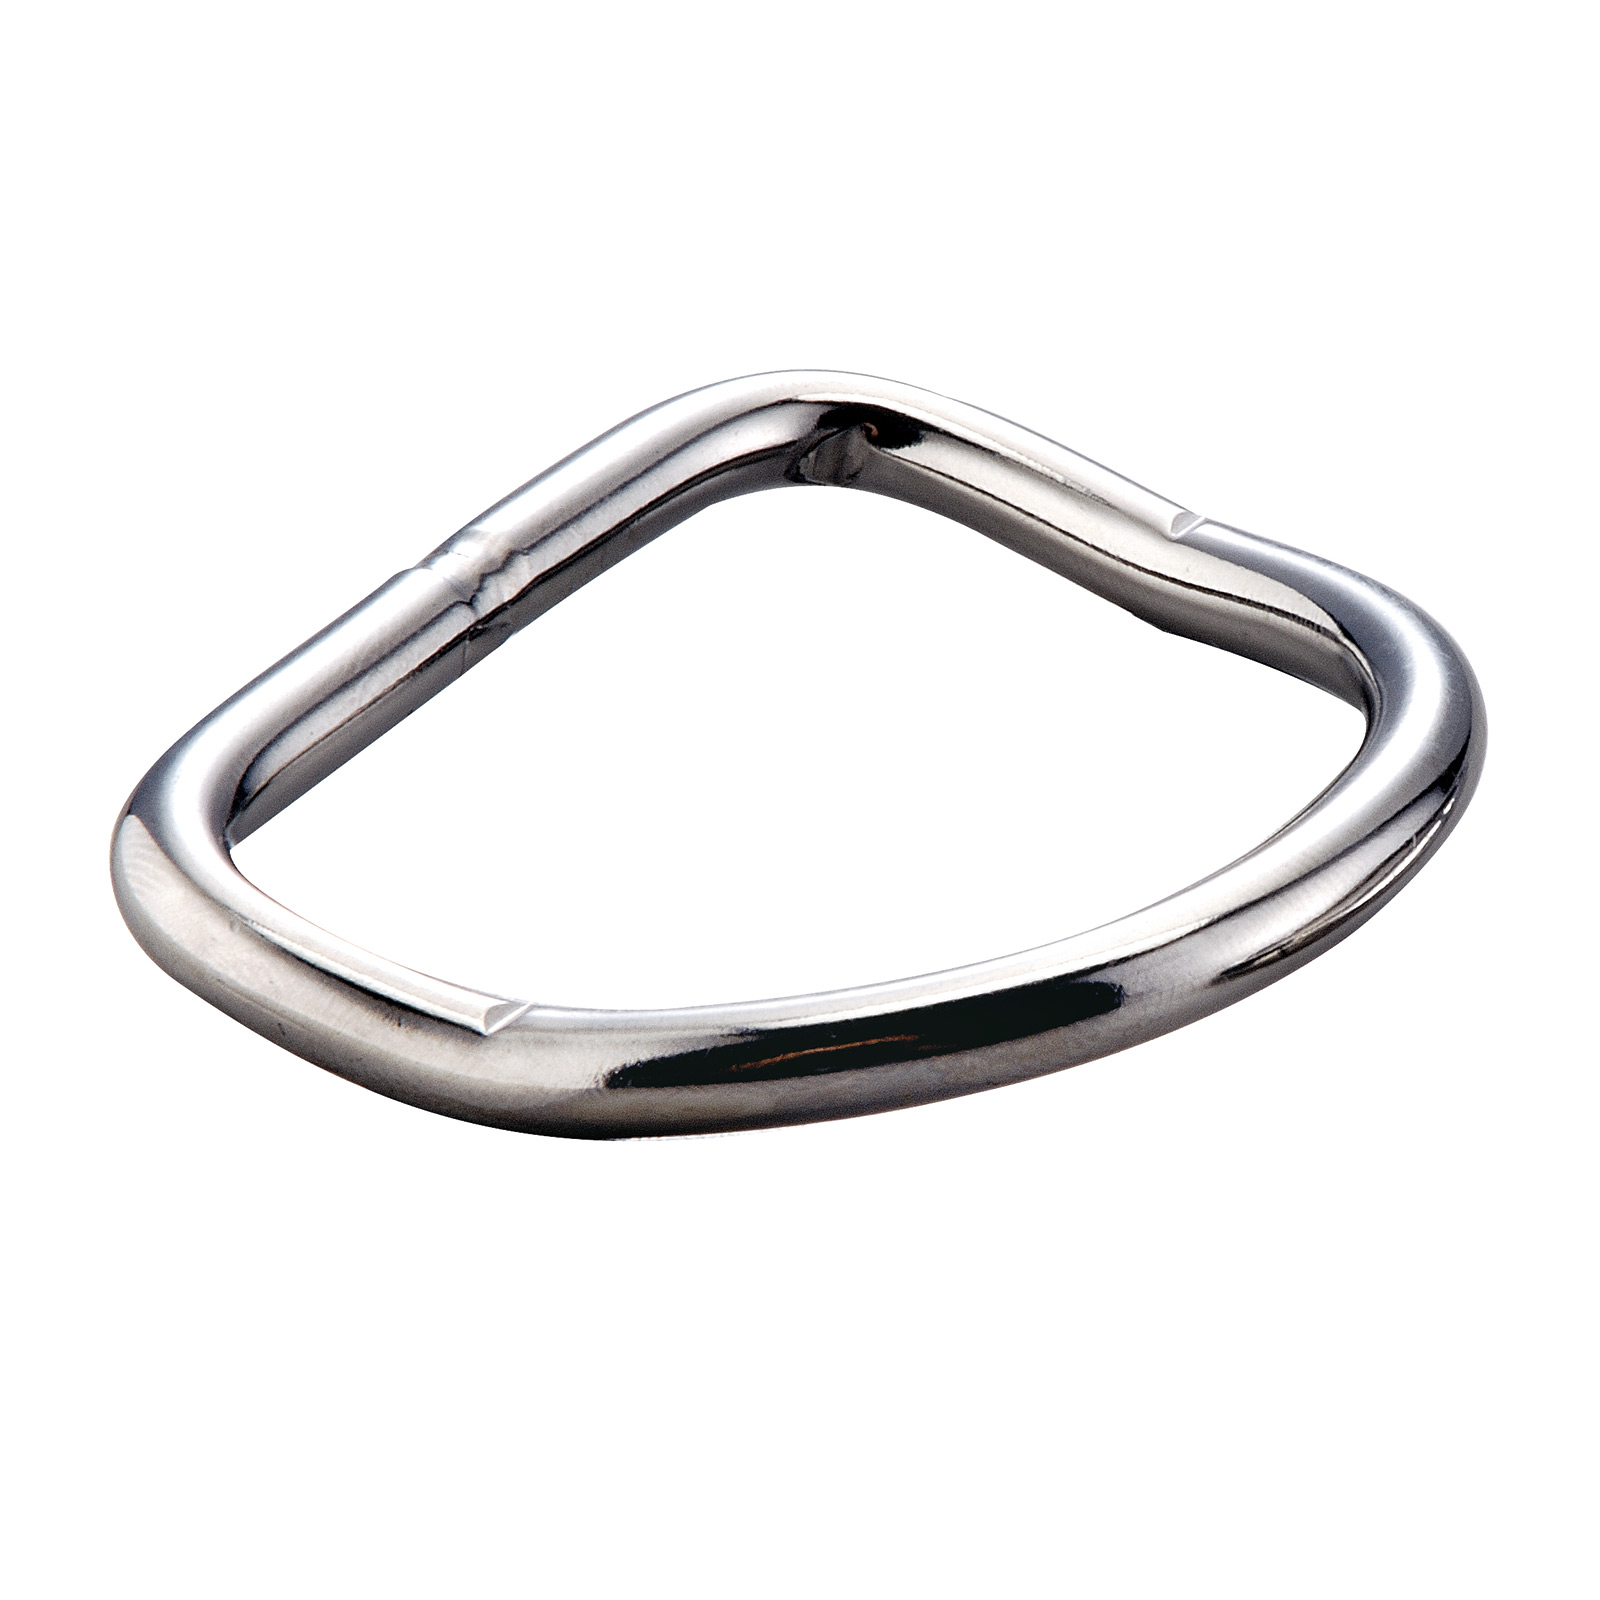 5mm BENT D-RING